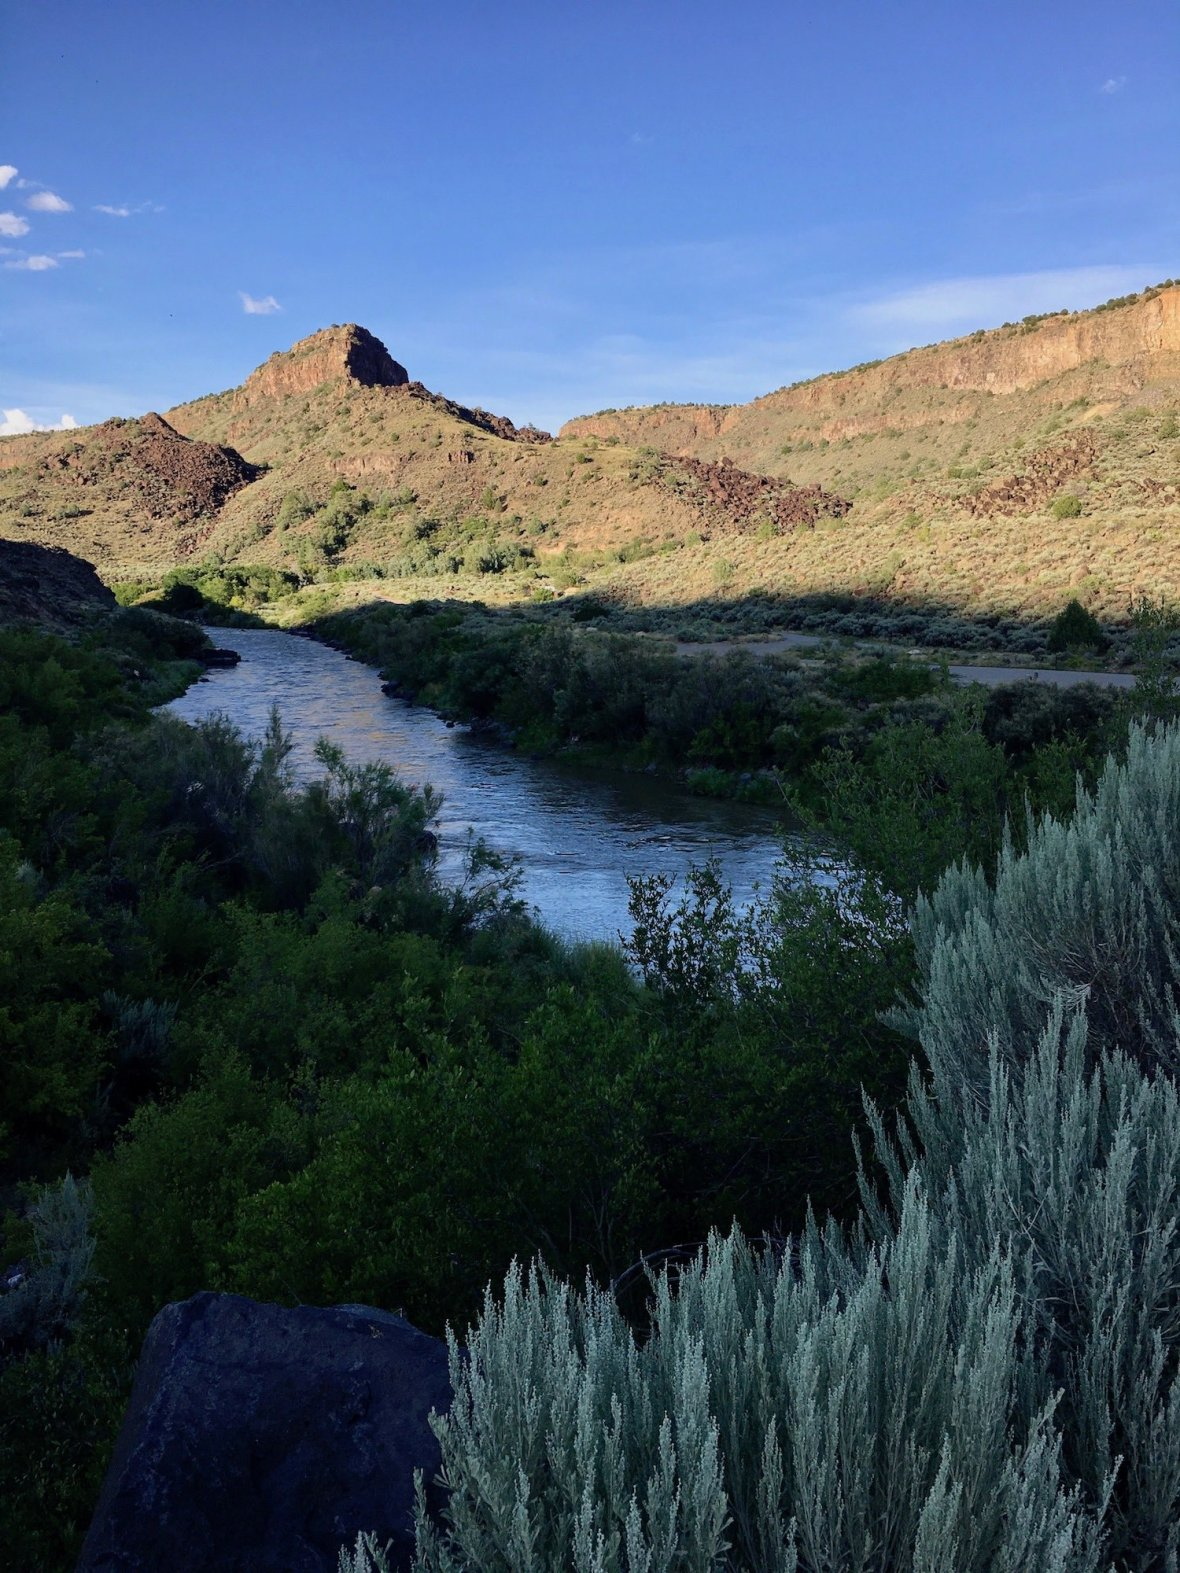 Through the sage, the Rio Grande in Orilla Verde Recreation Area